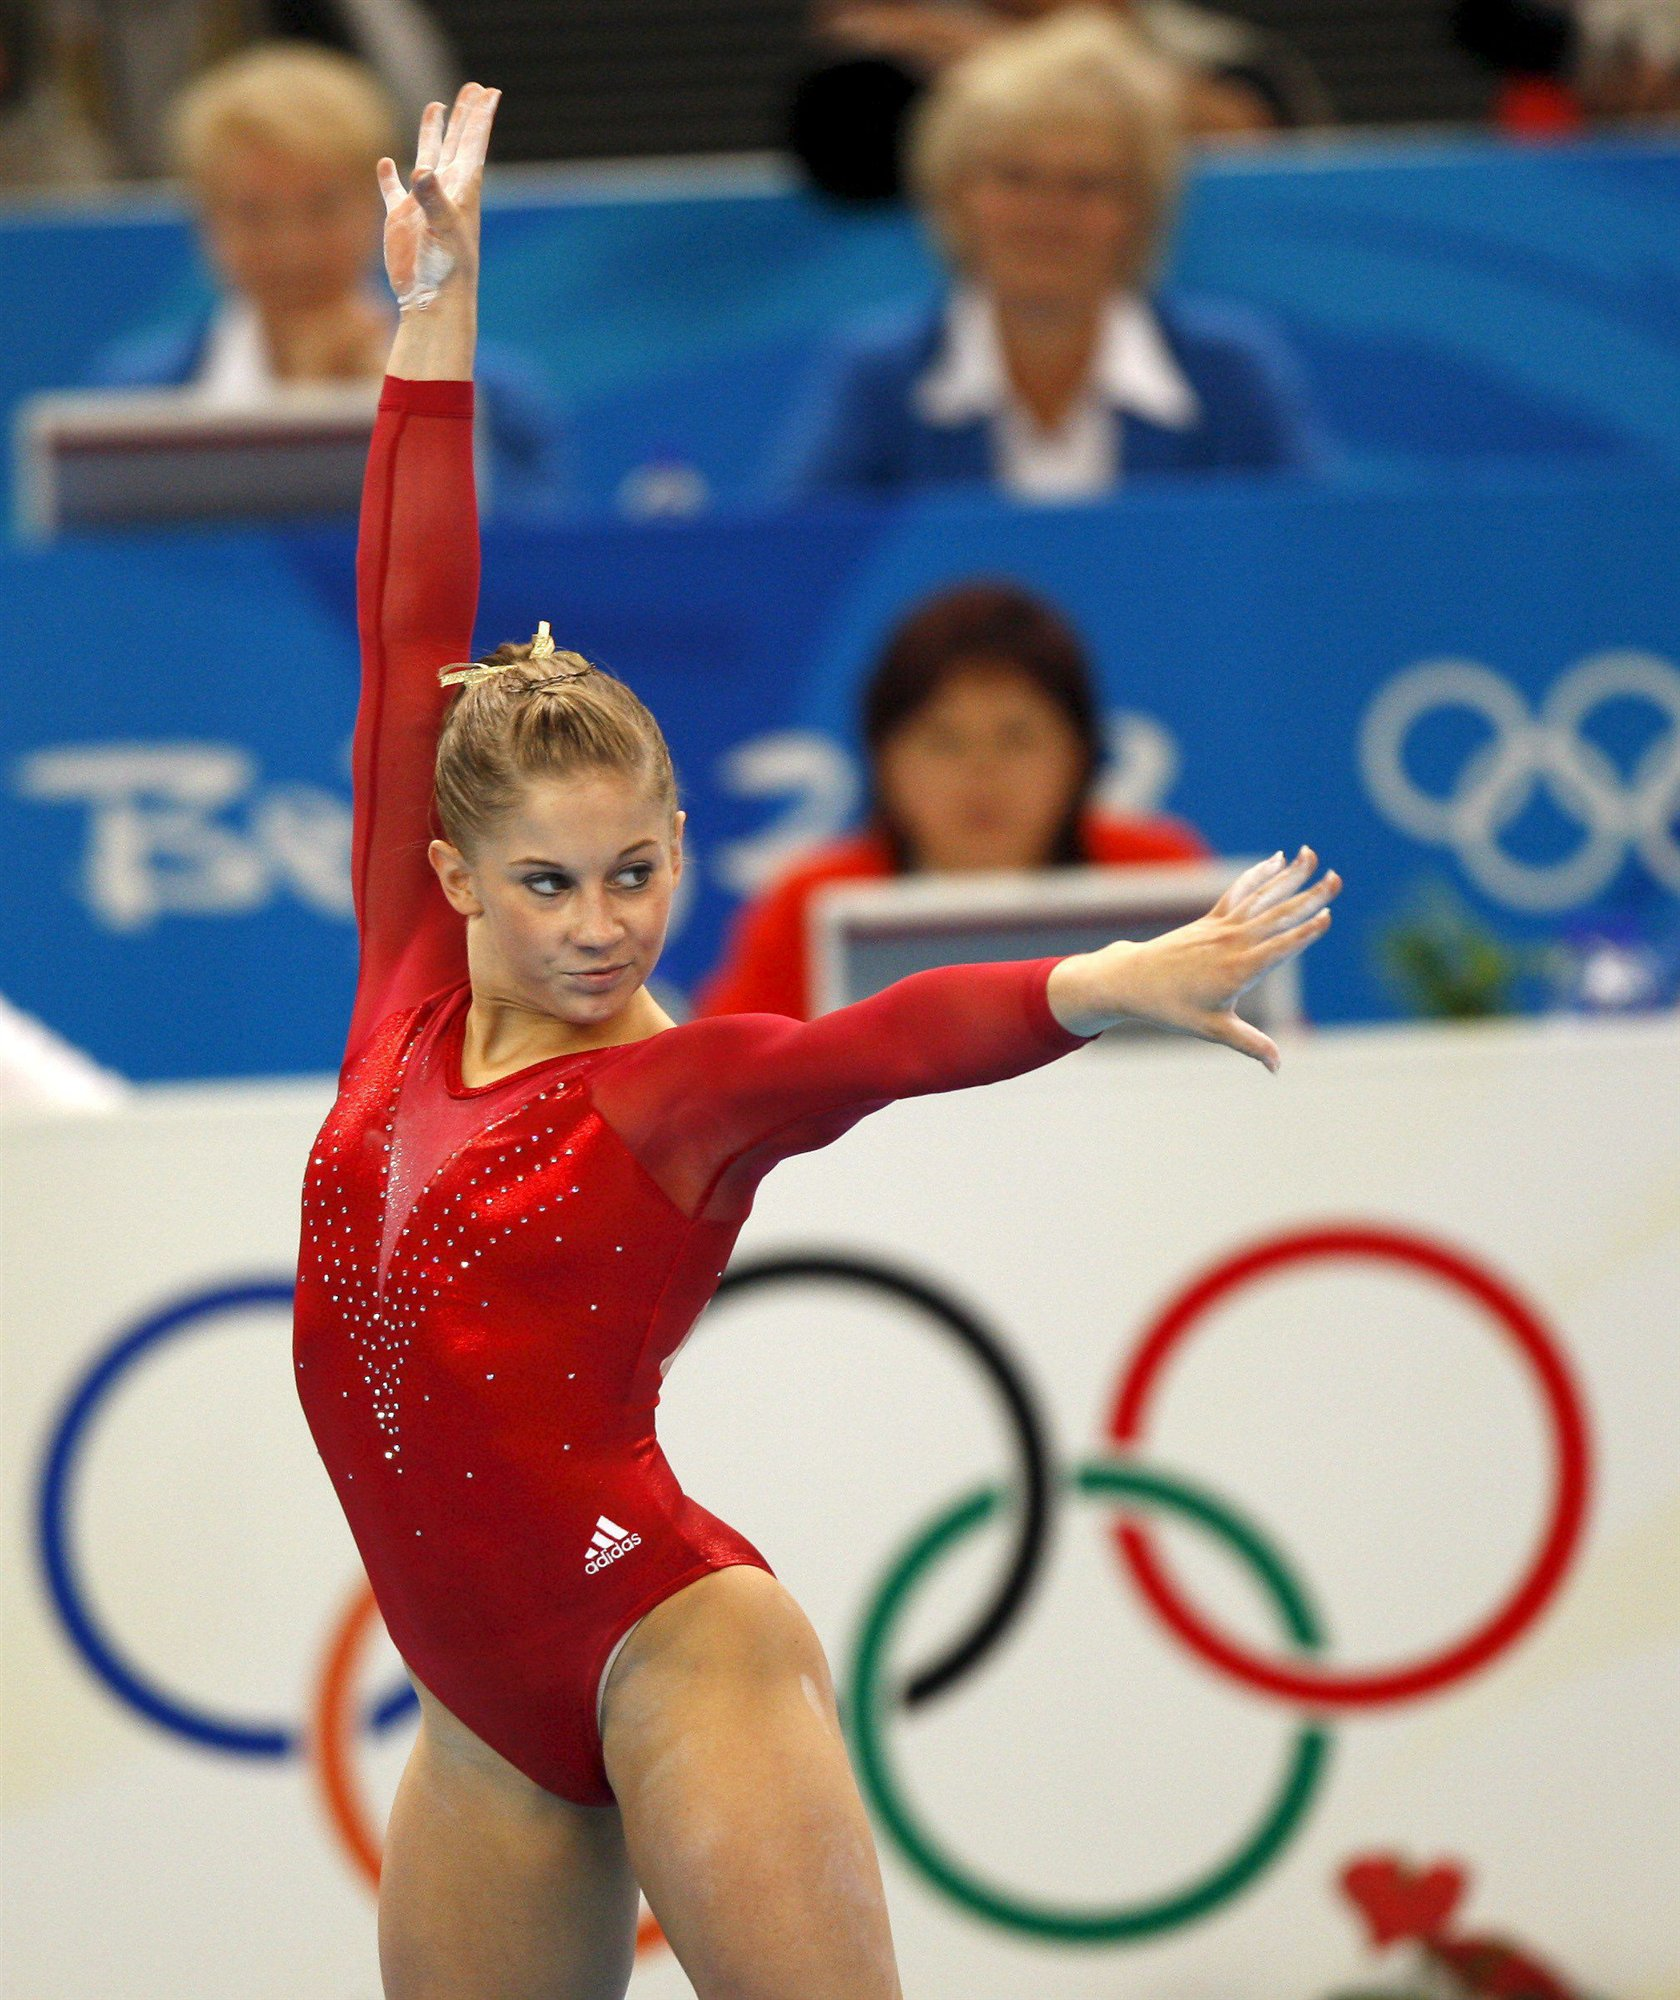 Shawn Johnson leaked wallpapers